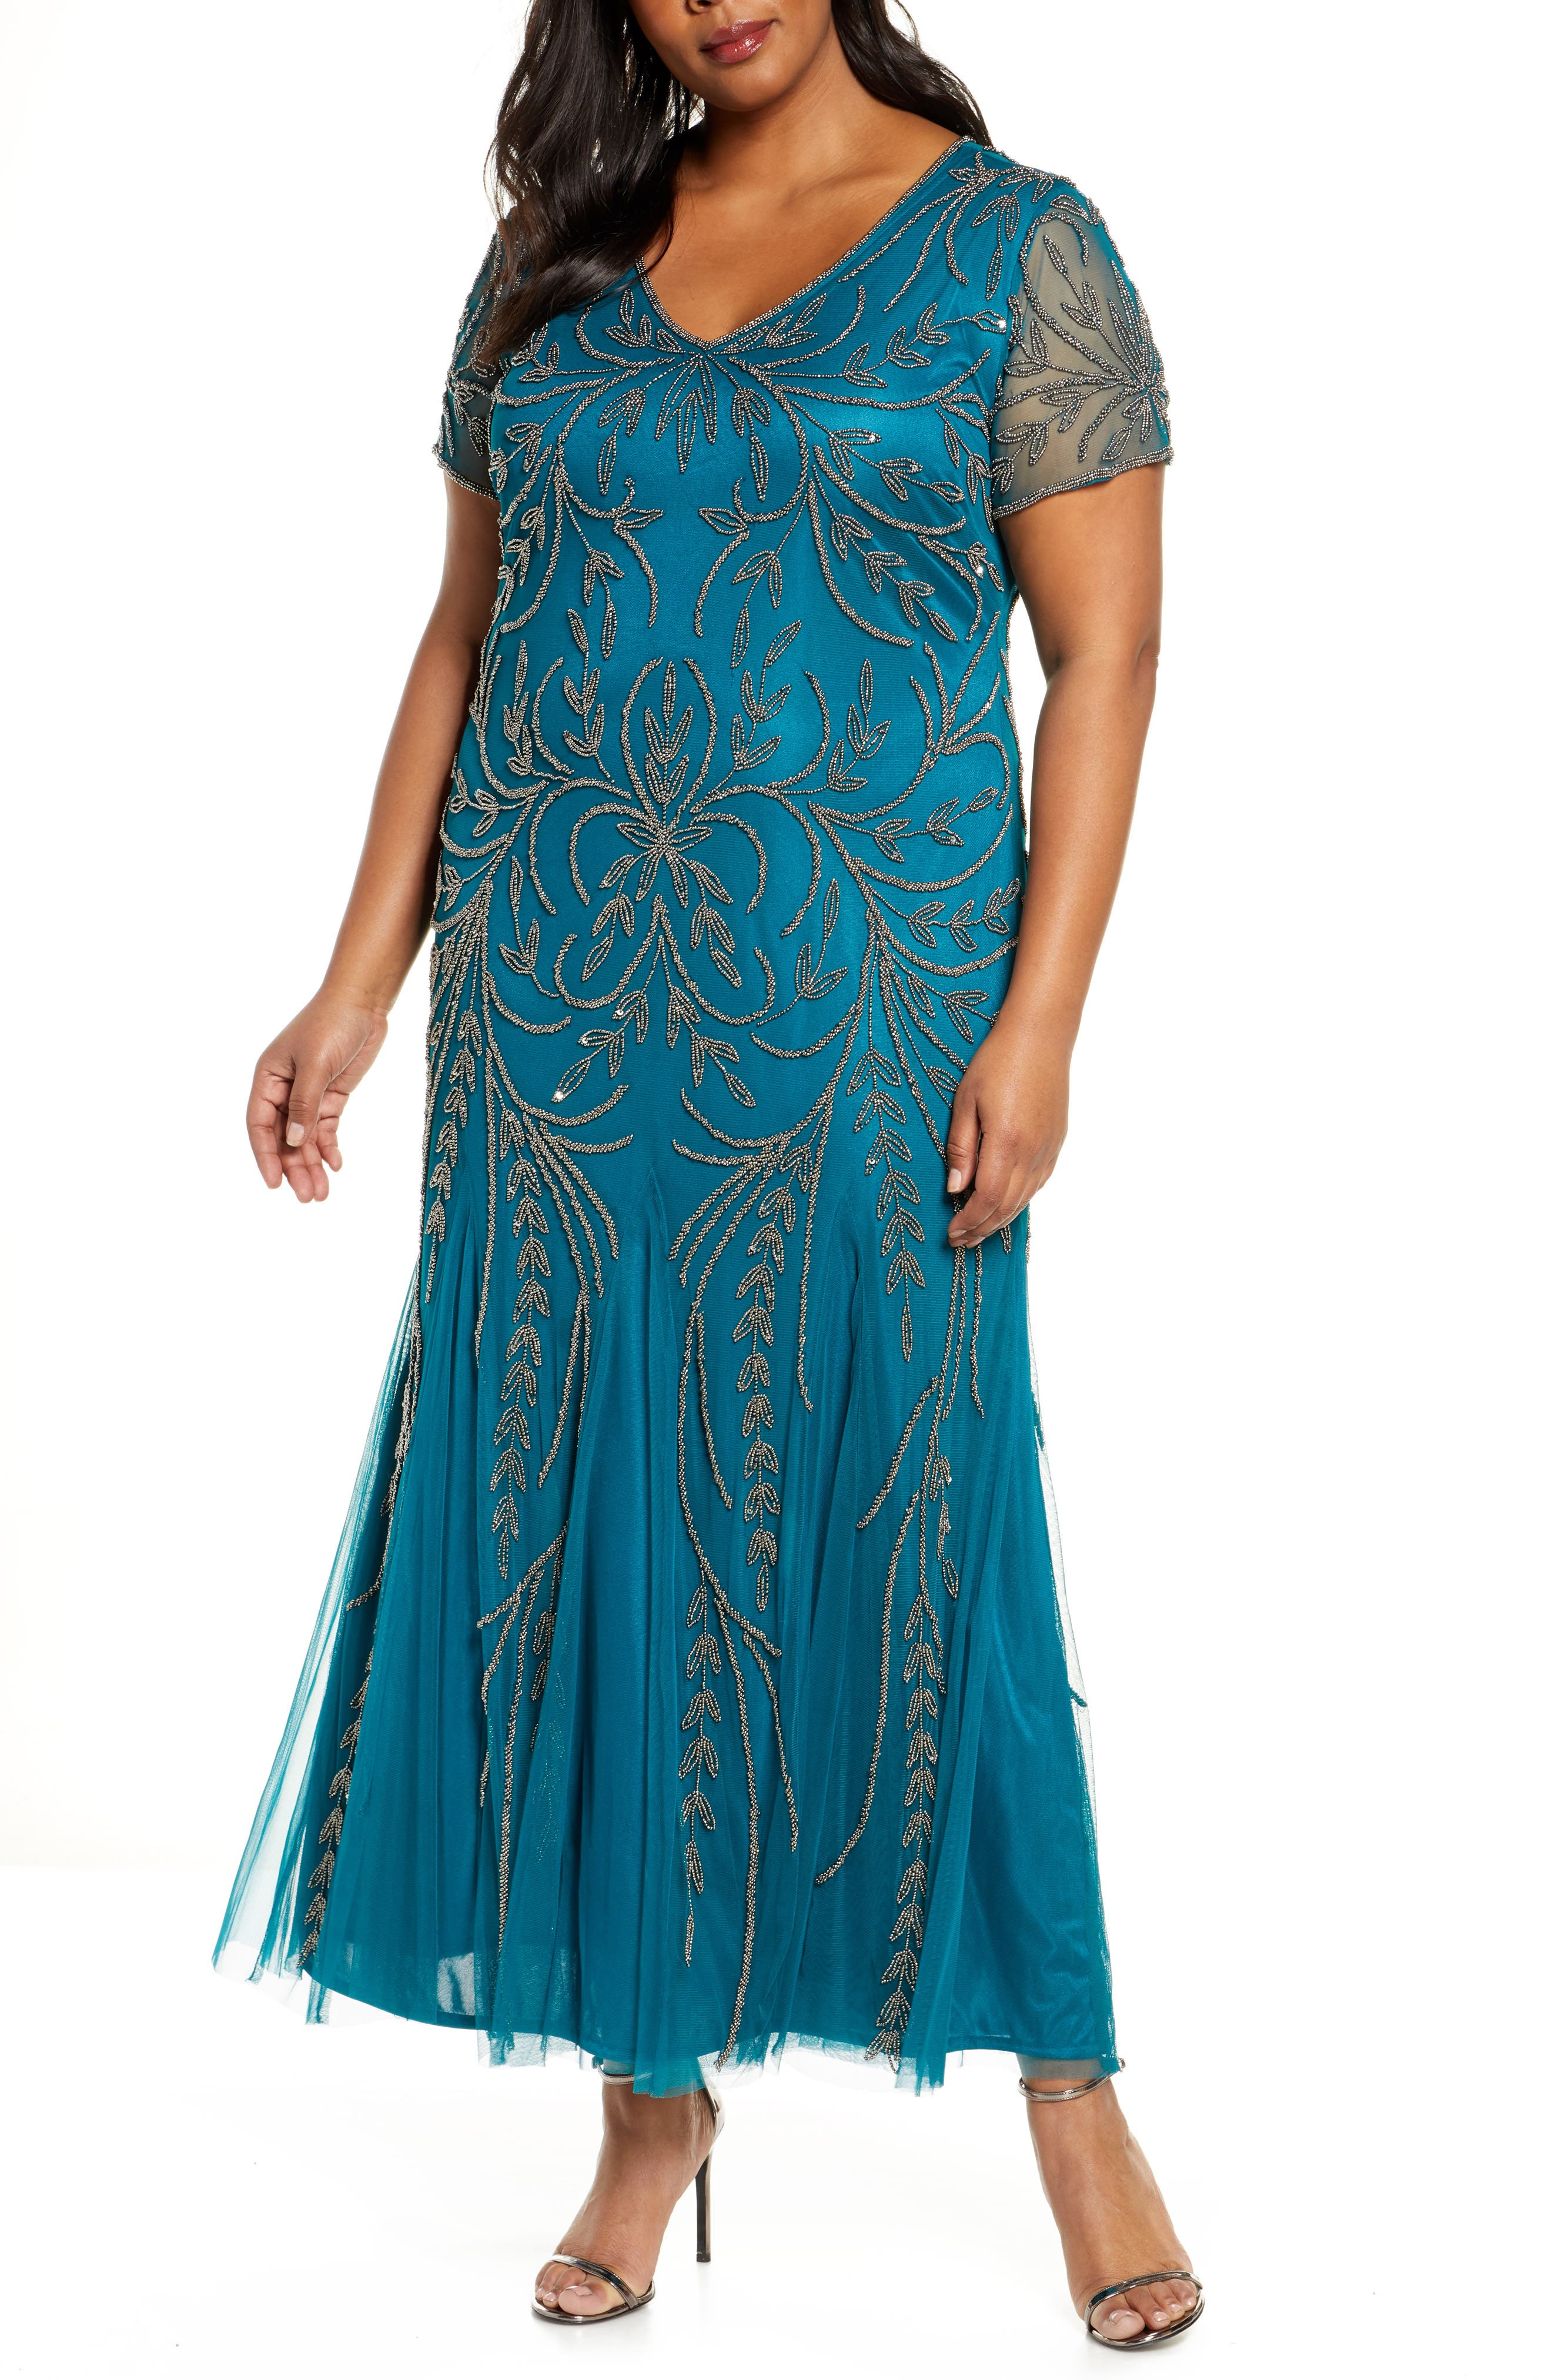 1920s Plus Size Flapper Dresses, Gatsby Dresses, Flapper Costumes Plus Size Womens Pisarro Nights V-Neck Embellished Mesh Gown Size 18W - Bluegreen $248.00 AT vintagedancer.com